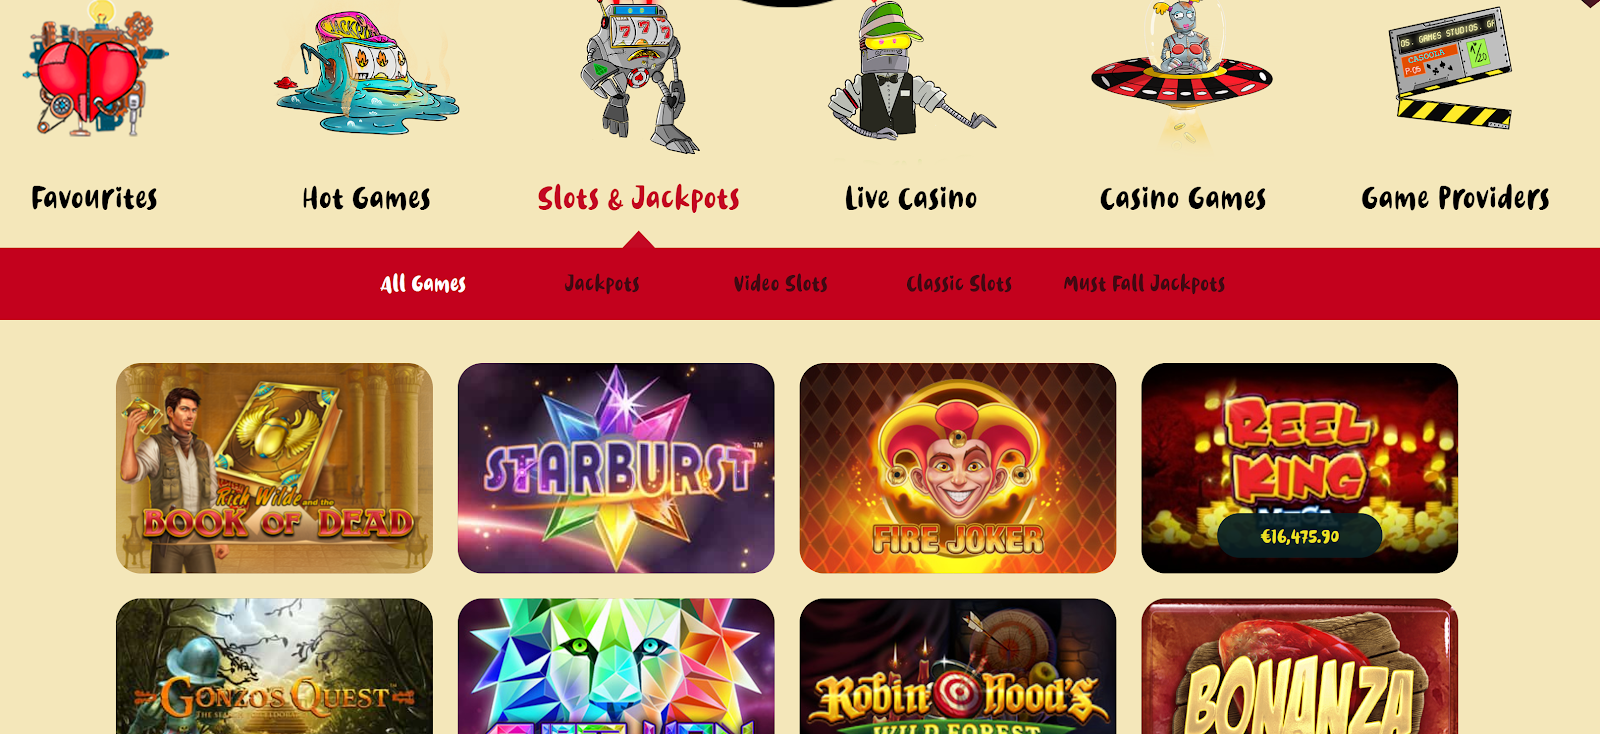 Casoola Casino has lots of great slot games that you can play